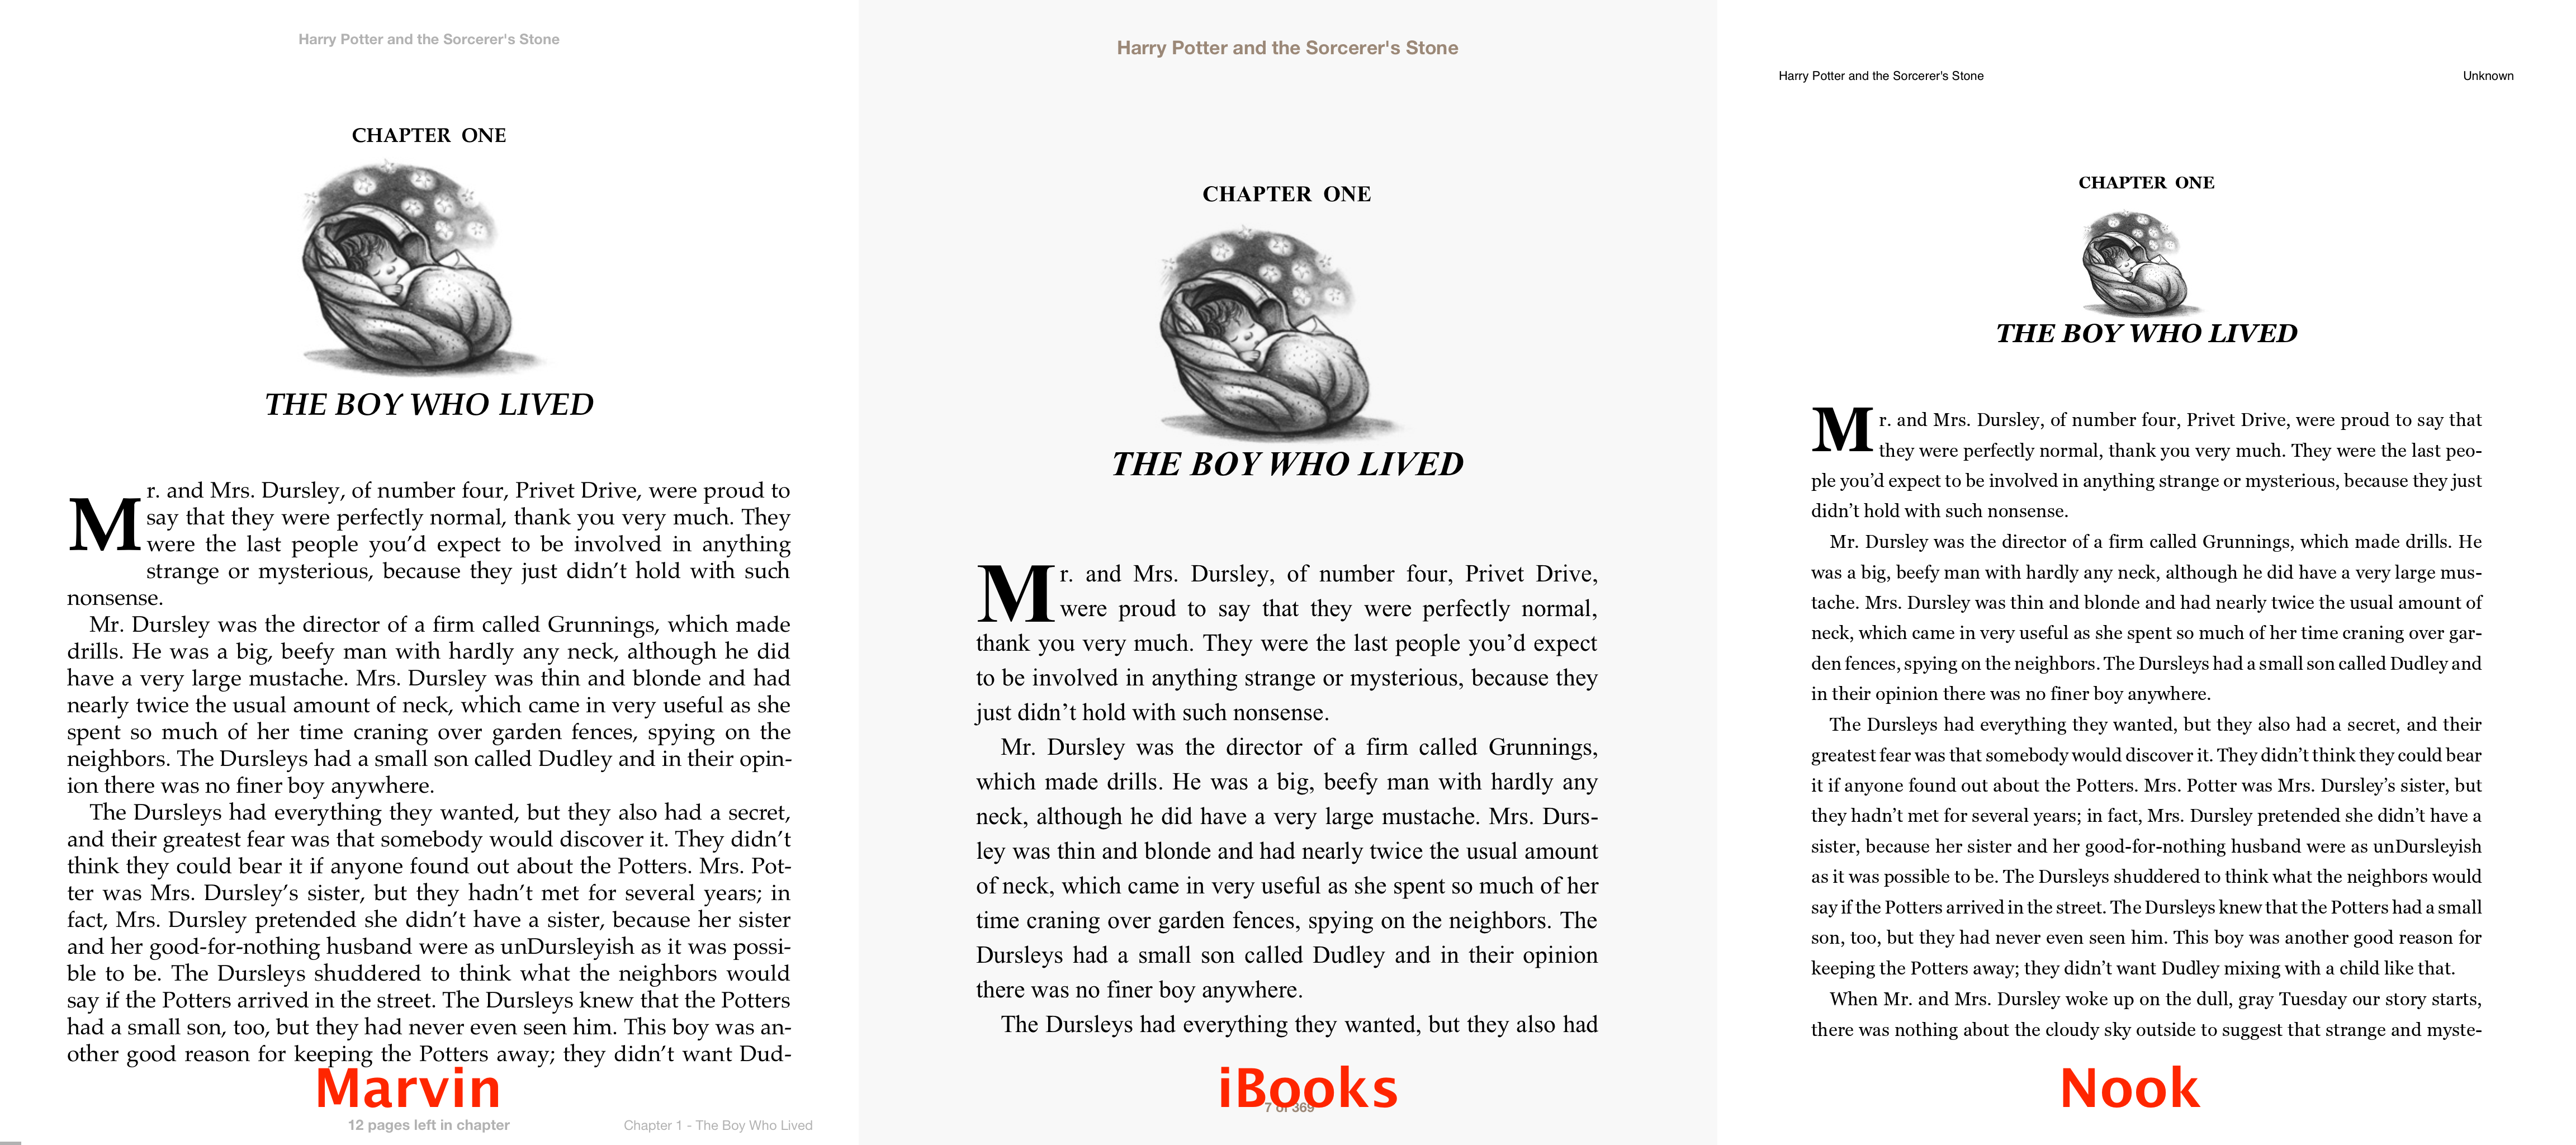 Marvin the Intelligent Ebook Reader (Almost) Gets It Right